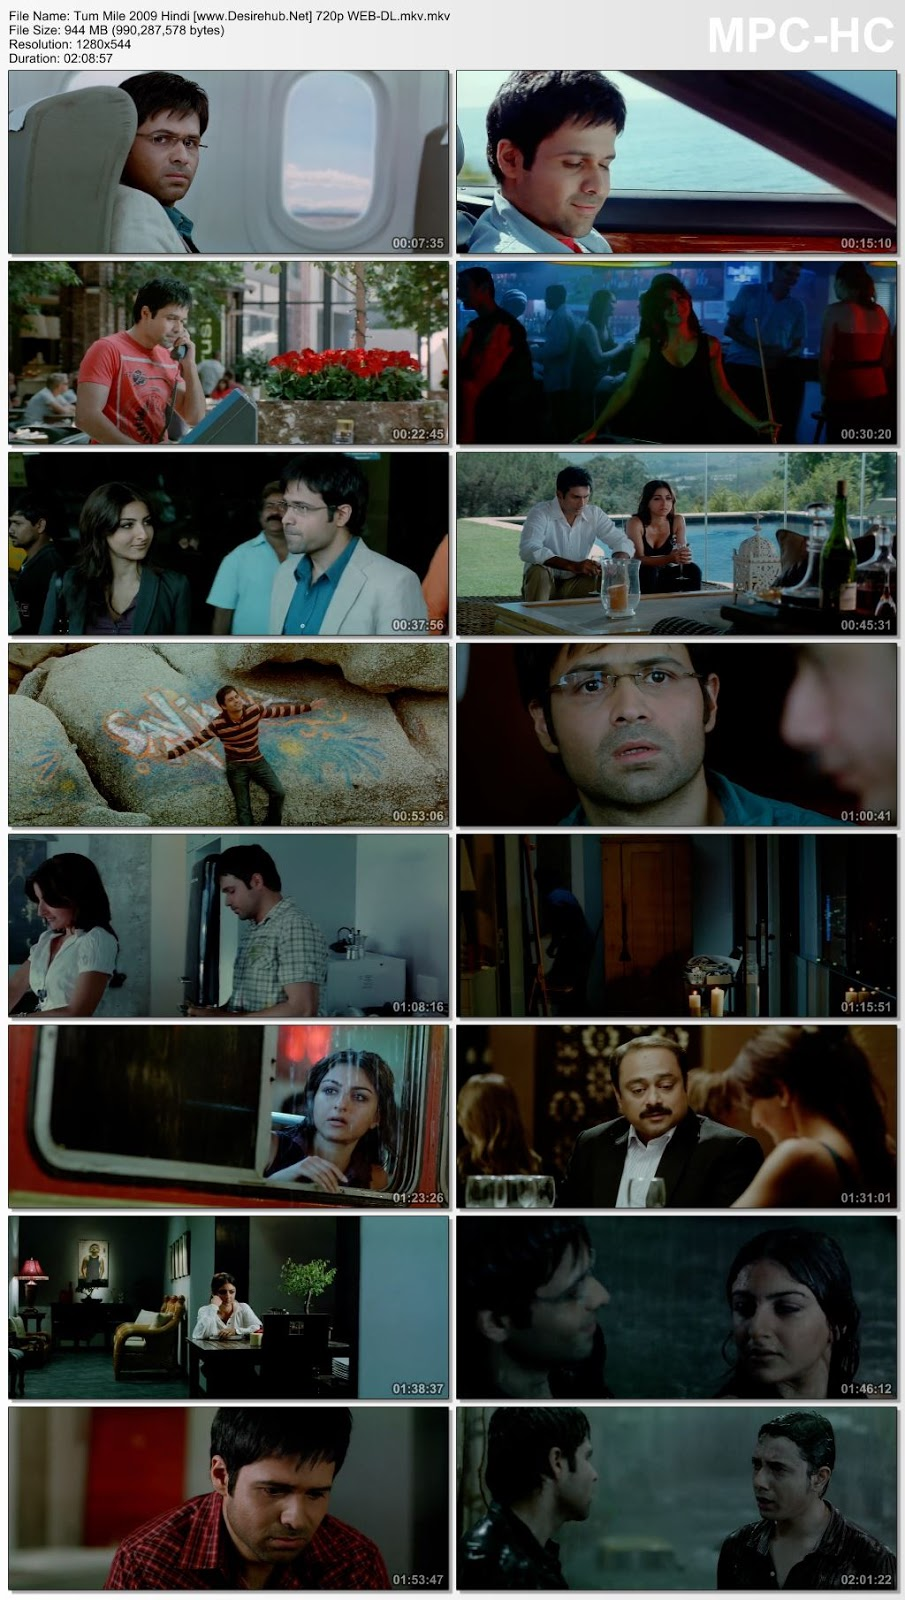 Tum Mile 2009 Hindi 480p WEB-DL 350MB Desirehub